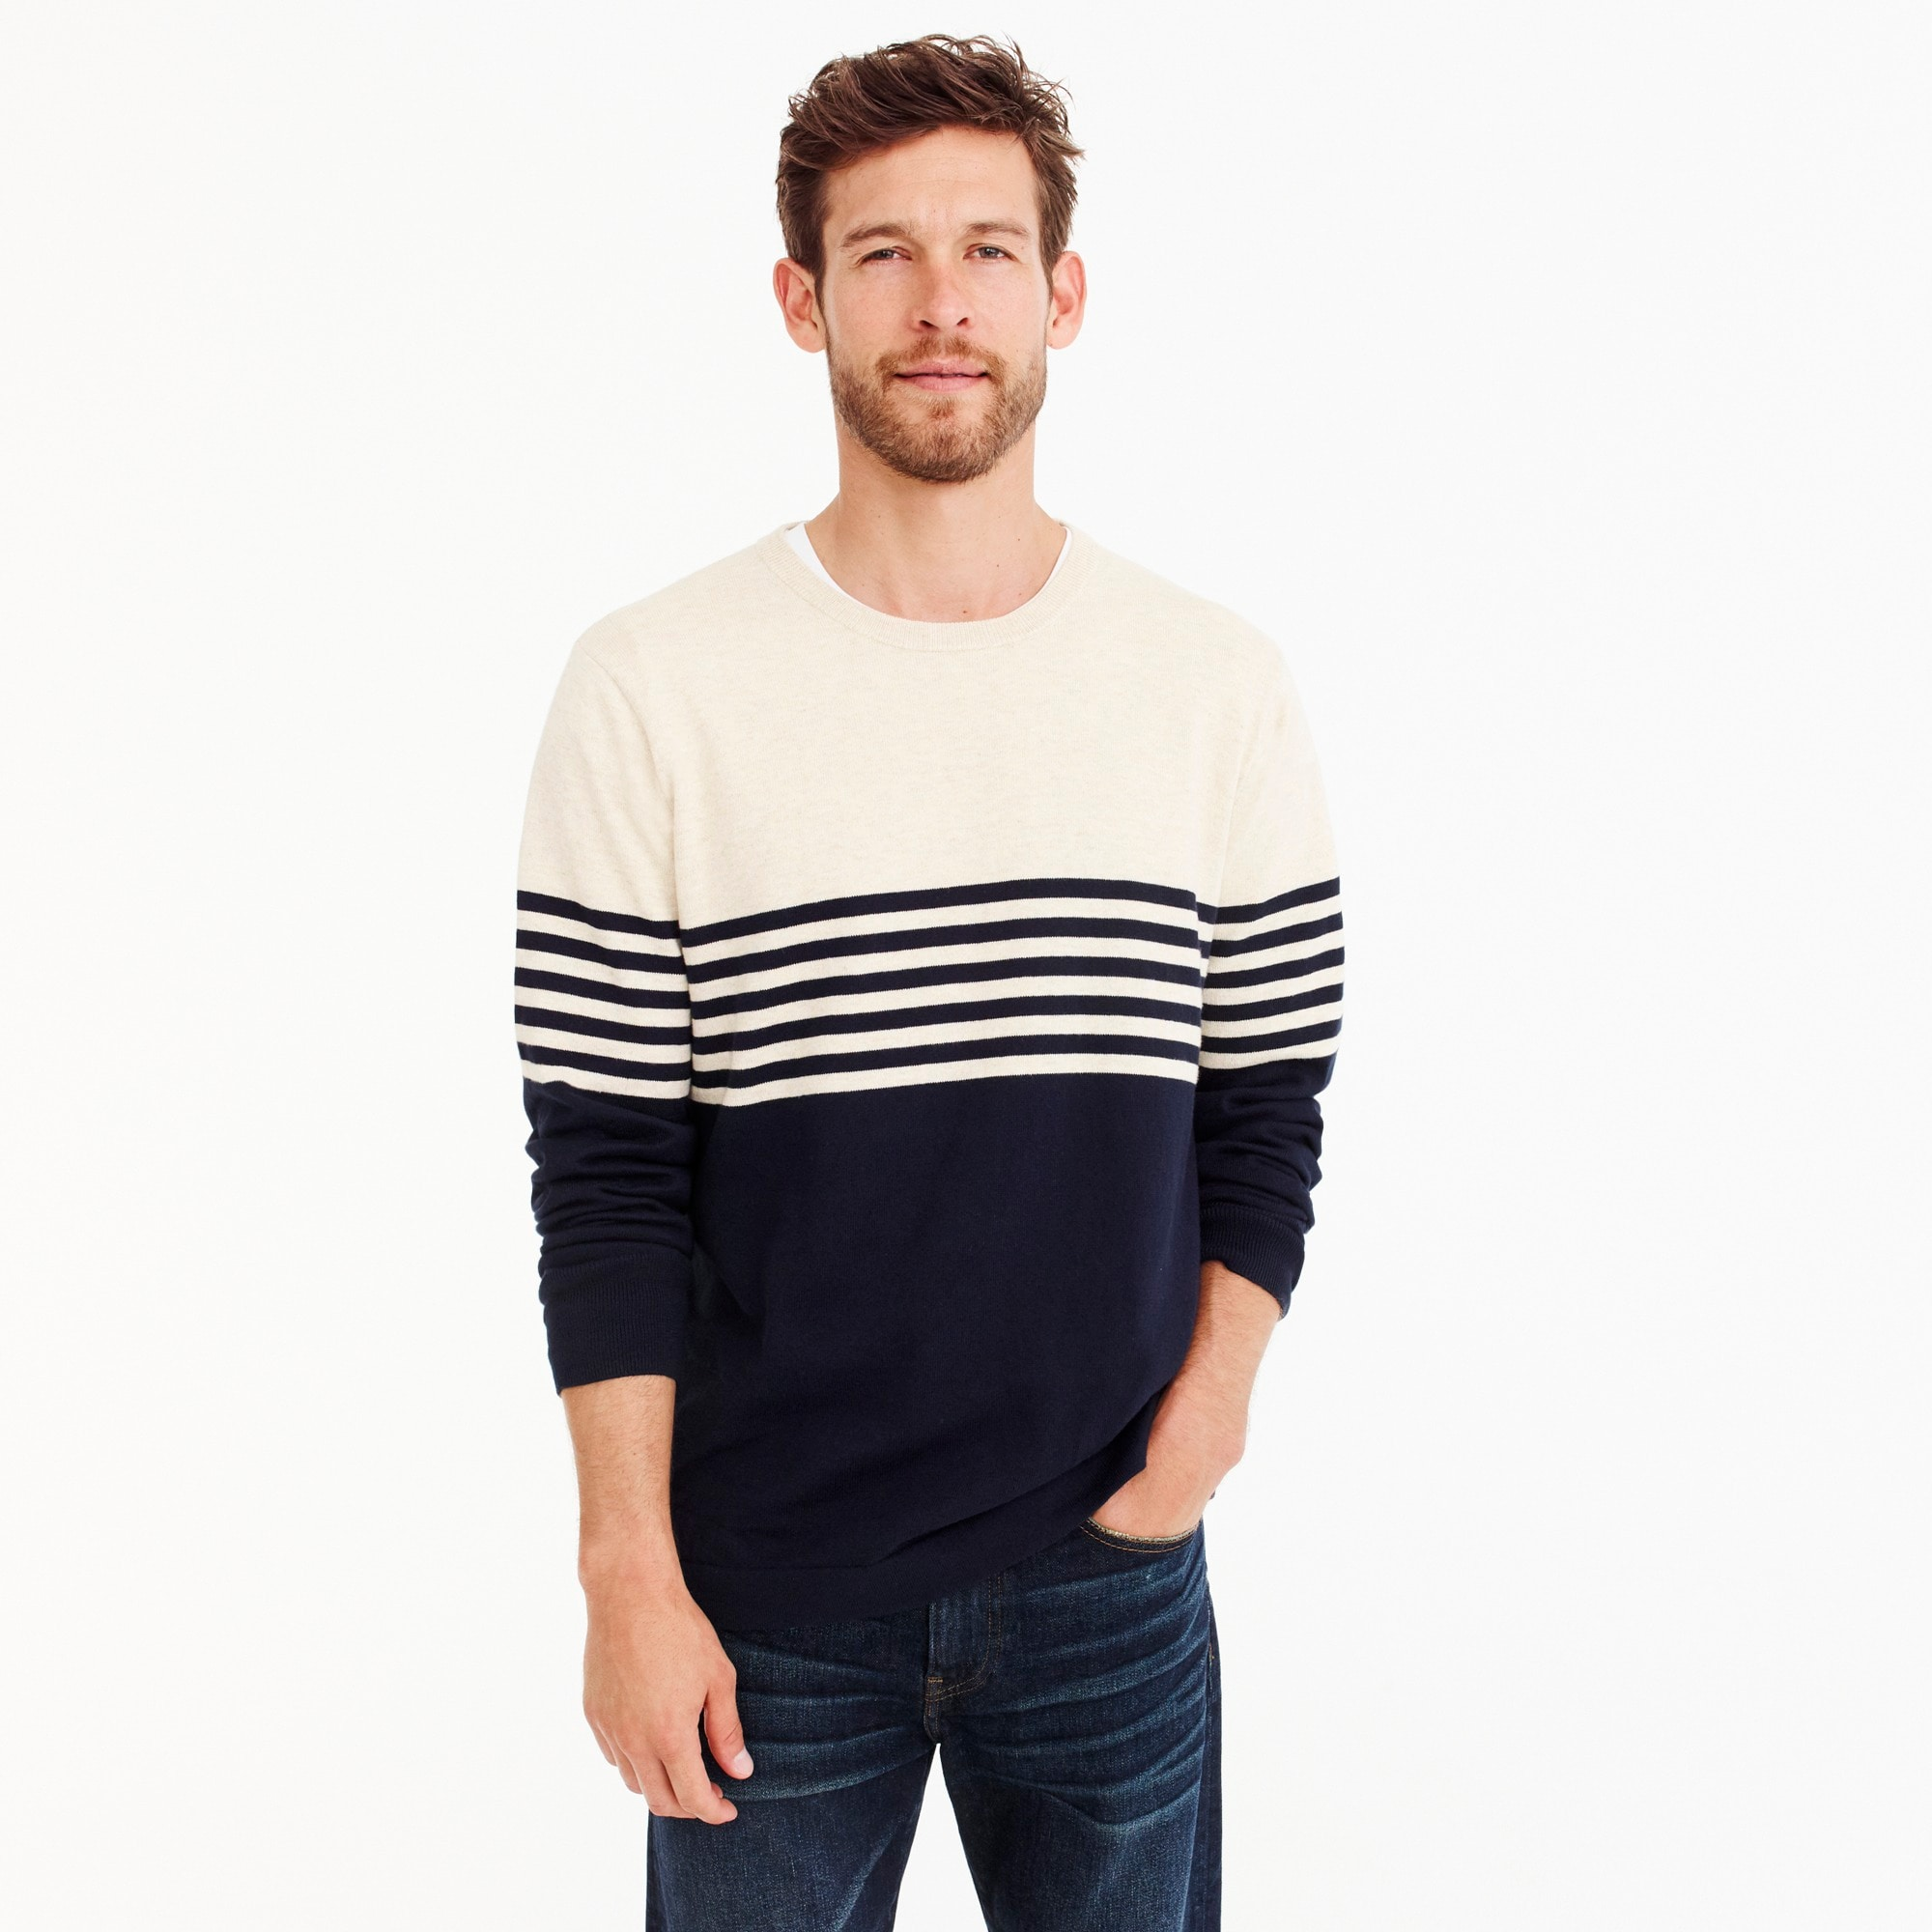 mens Cotton crew neck sweater in colorblock stripe